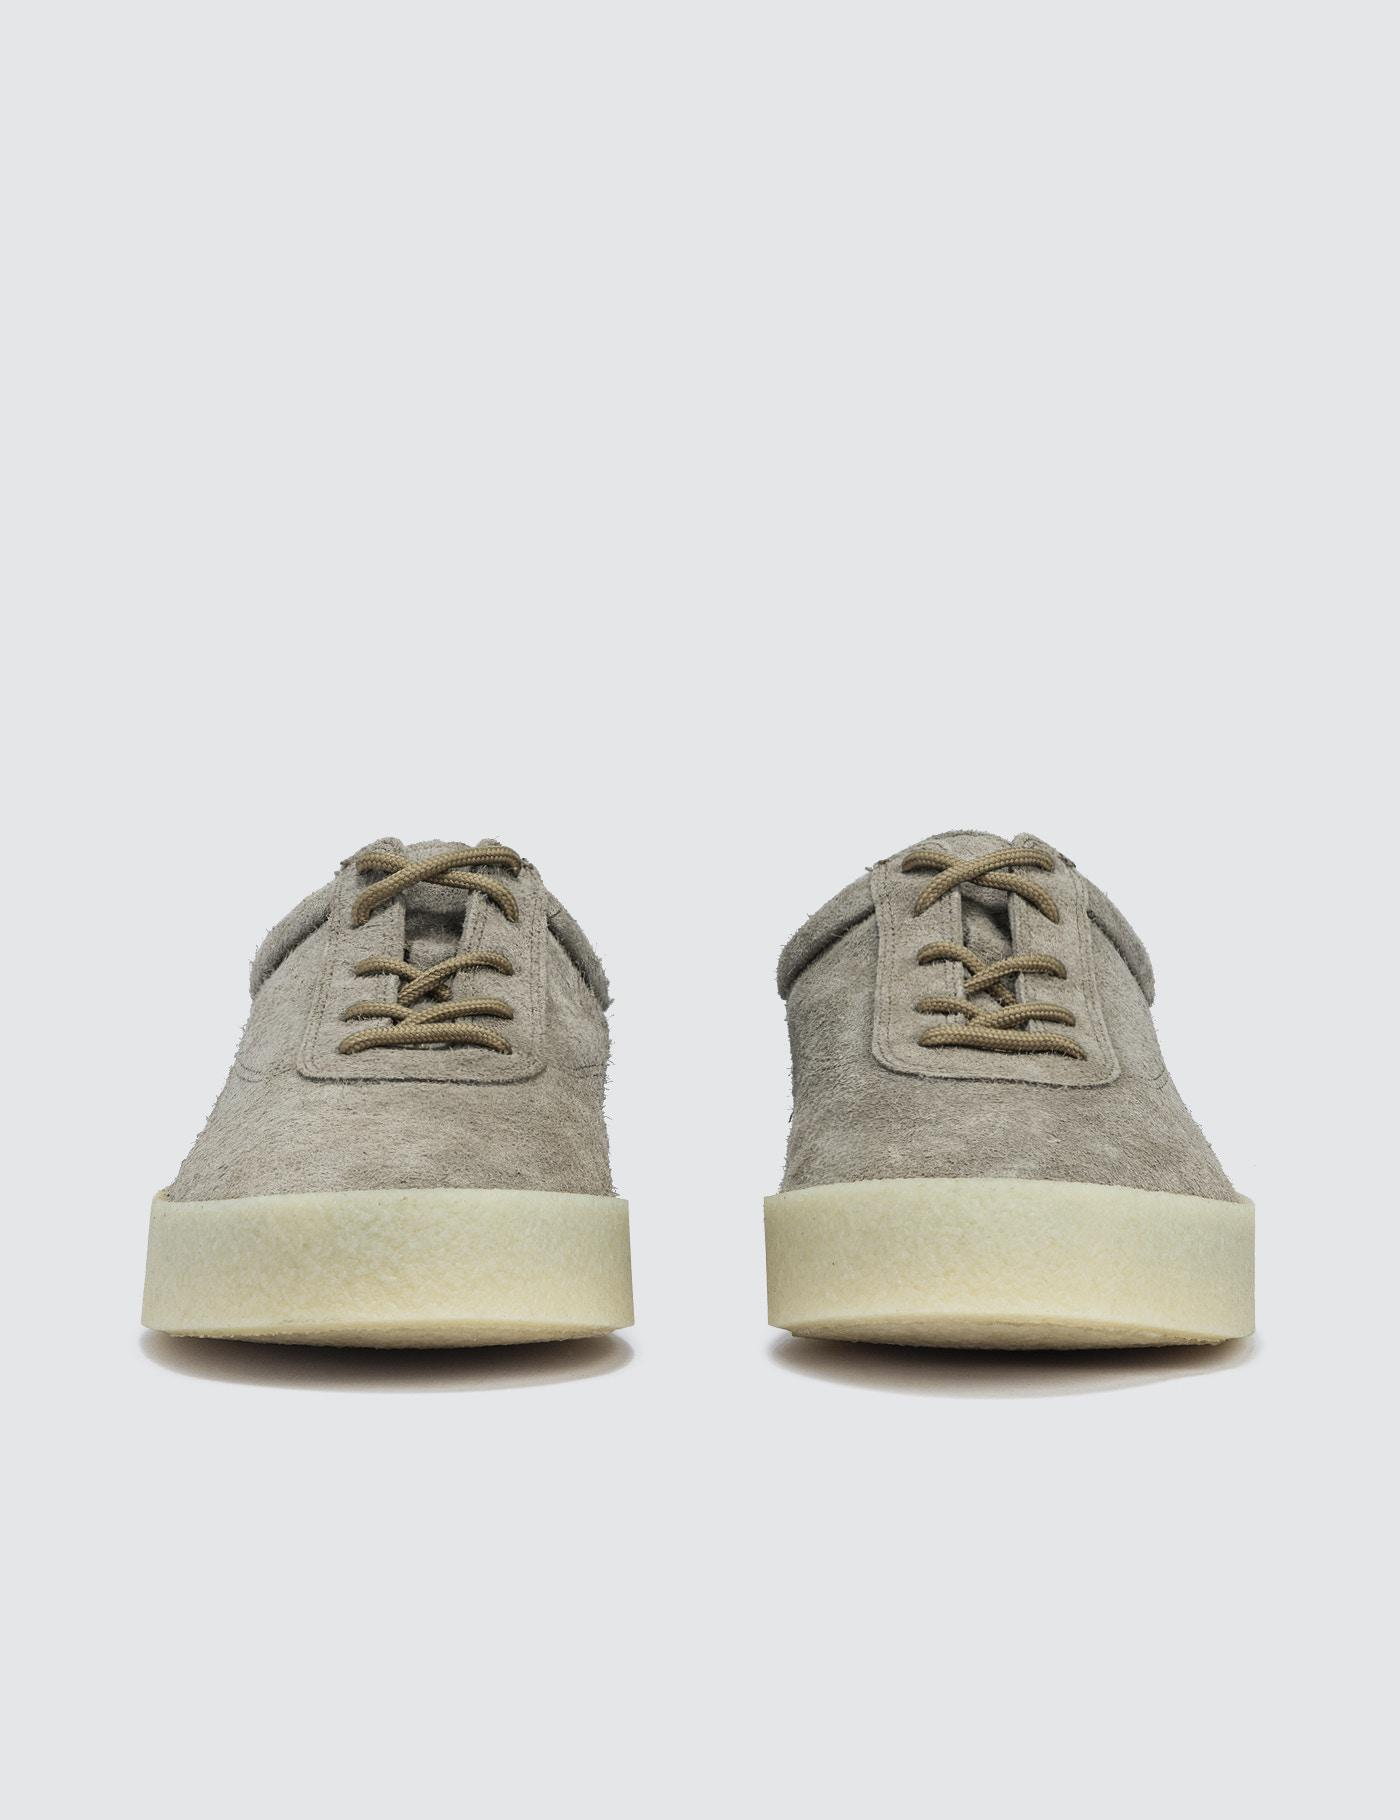 b4e349ae6fee9 Yeezy Women s Crepe Sneaker In Thick Shaggy Suede - Lyst